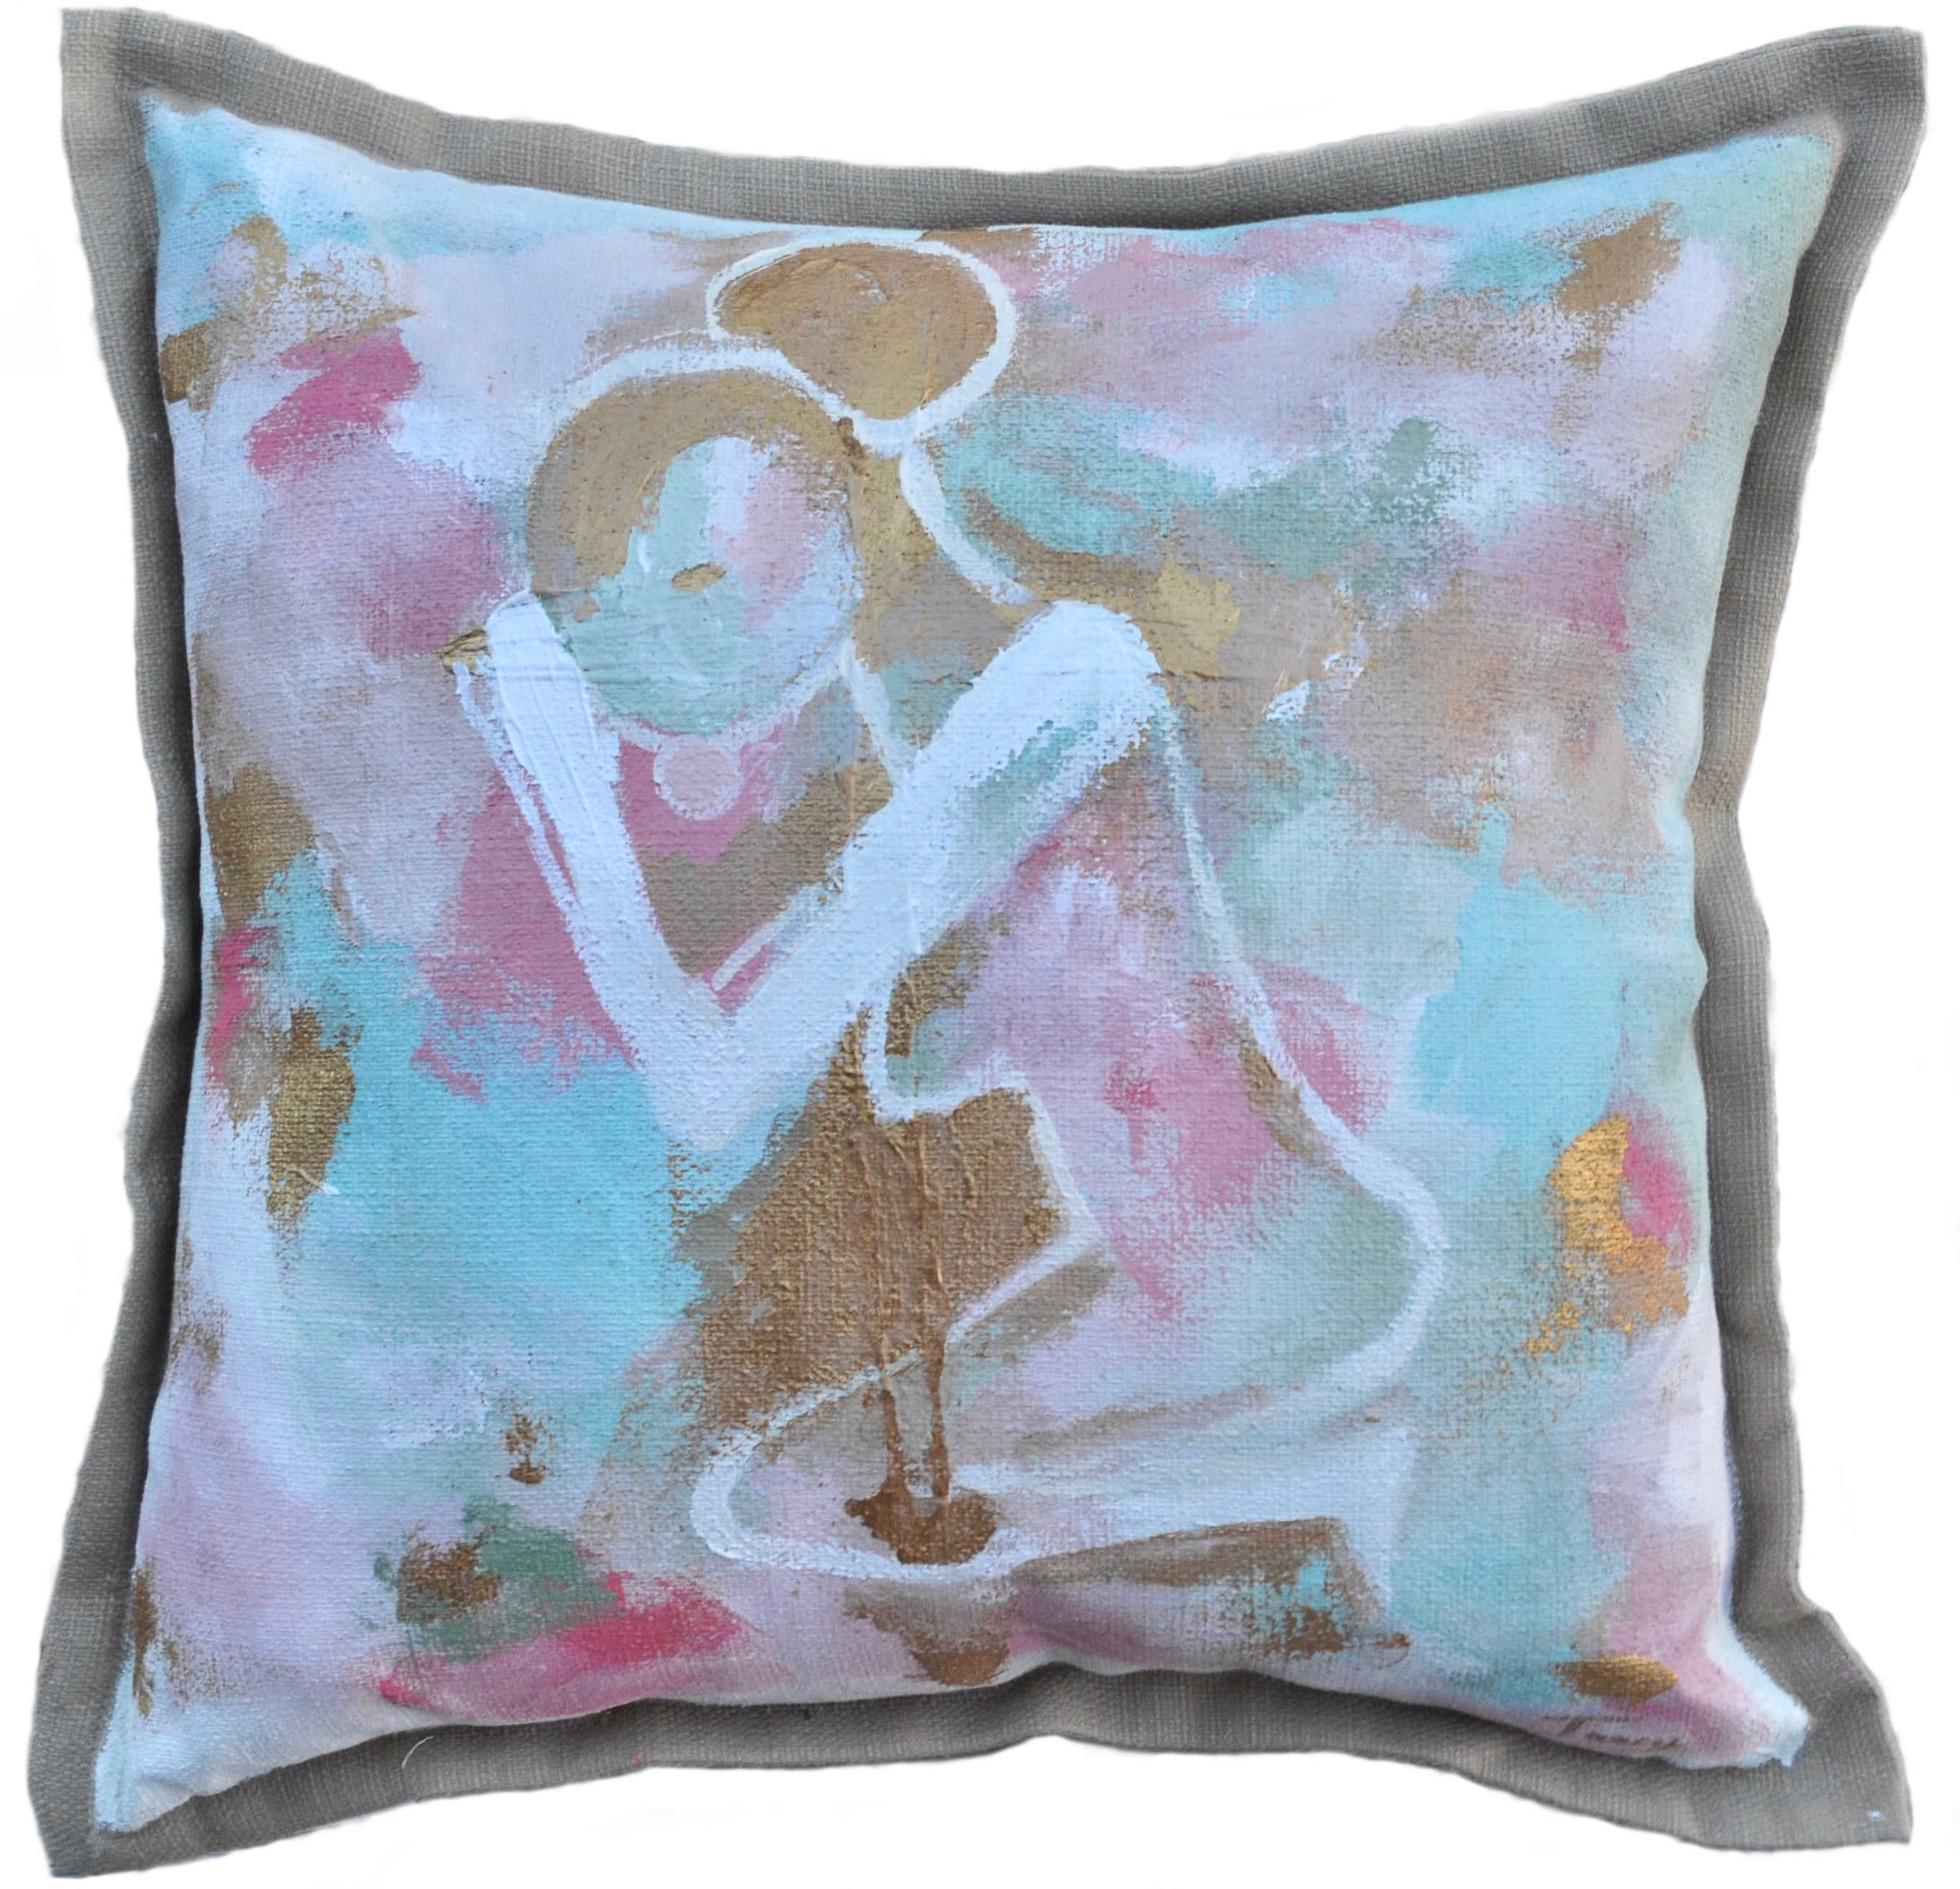 Prayer Warrior Pillow